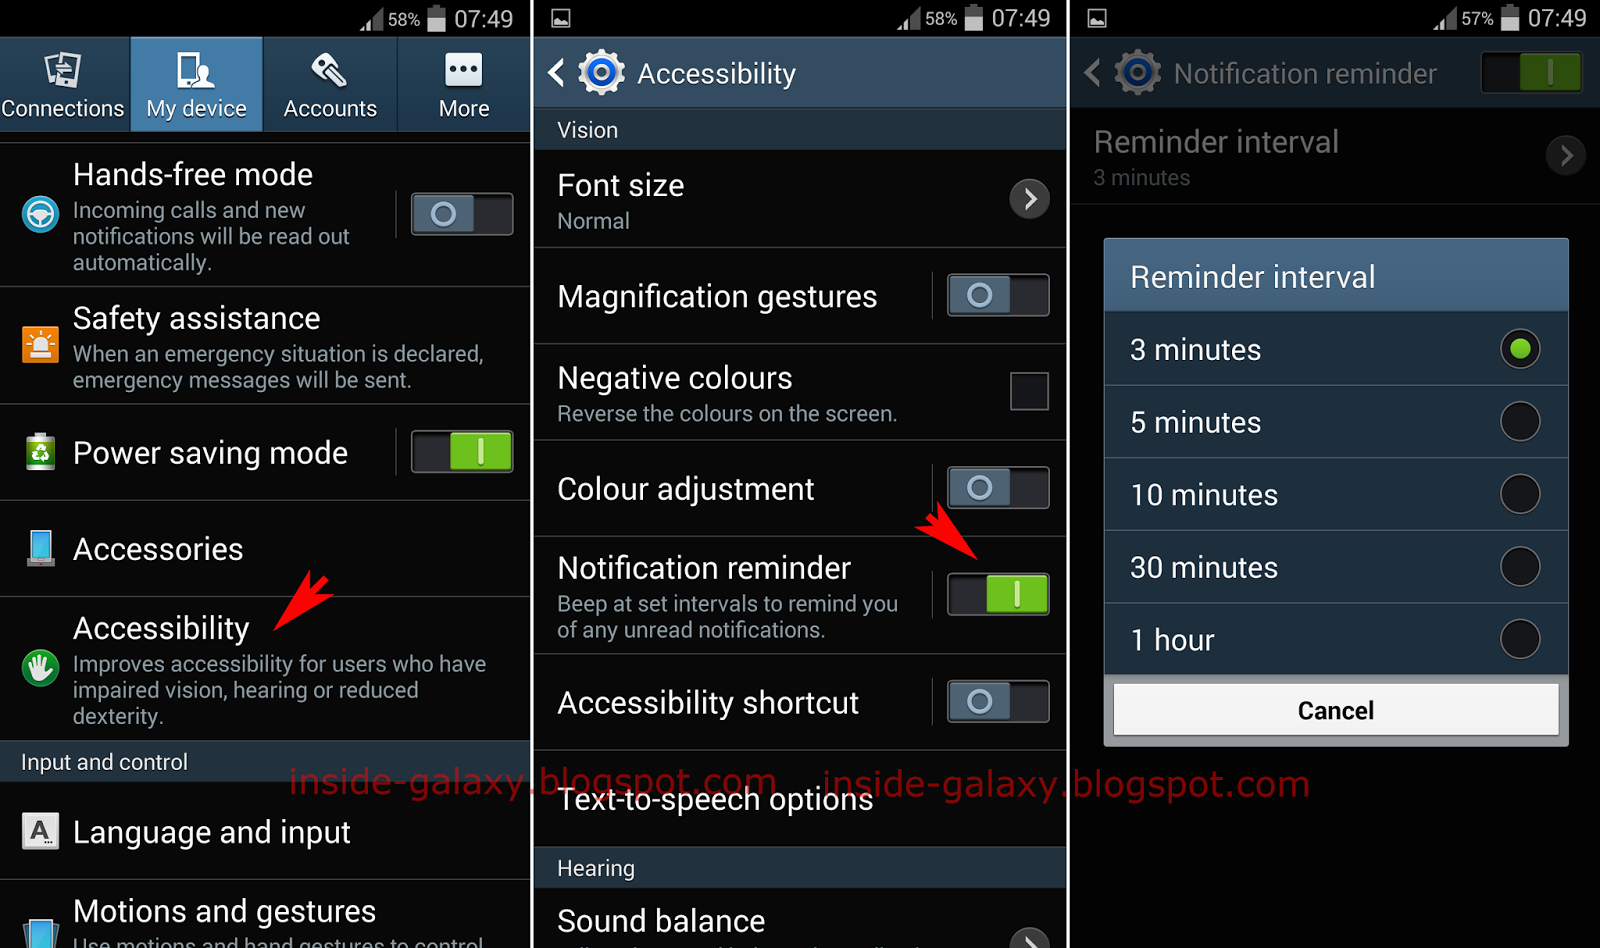 Samsung Galaxy S4: How to Enable or Disable Notification Reminder in